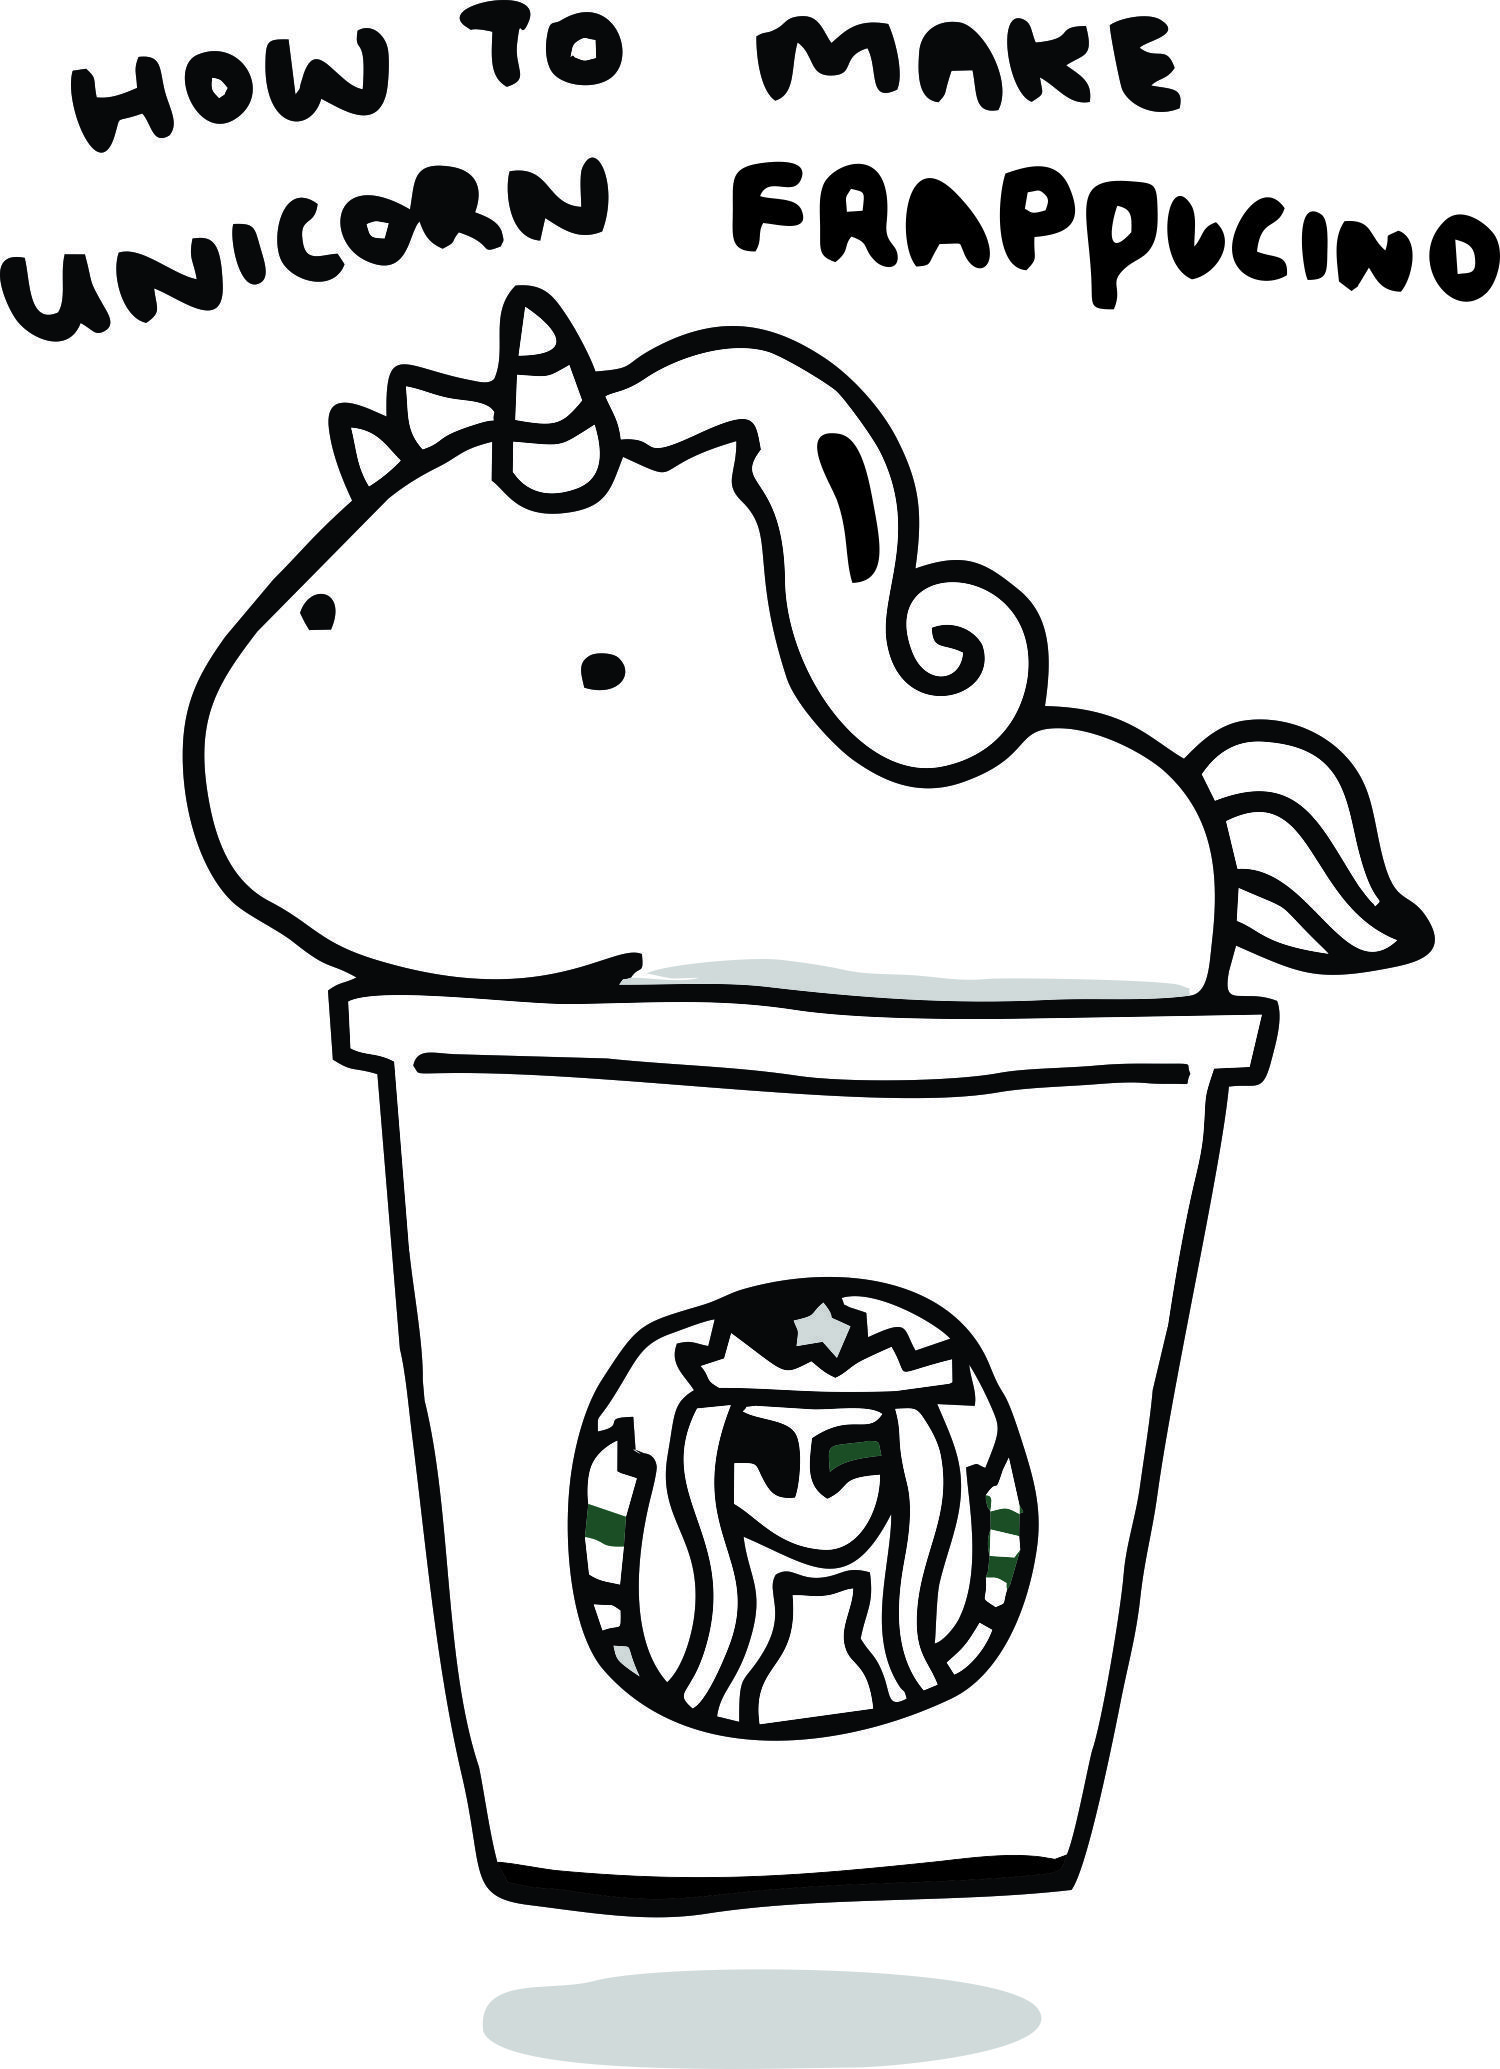 Starbucks Coloring Pages To Print Mermaid Coloring Pages Cool Coloring Pages Cute Little Drawings